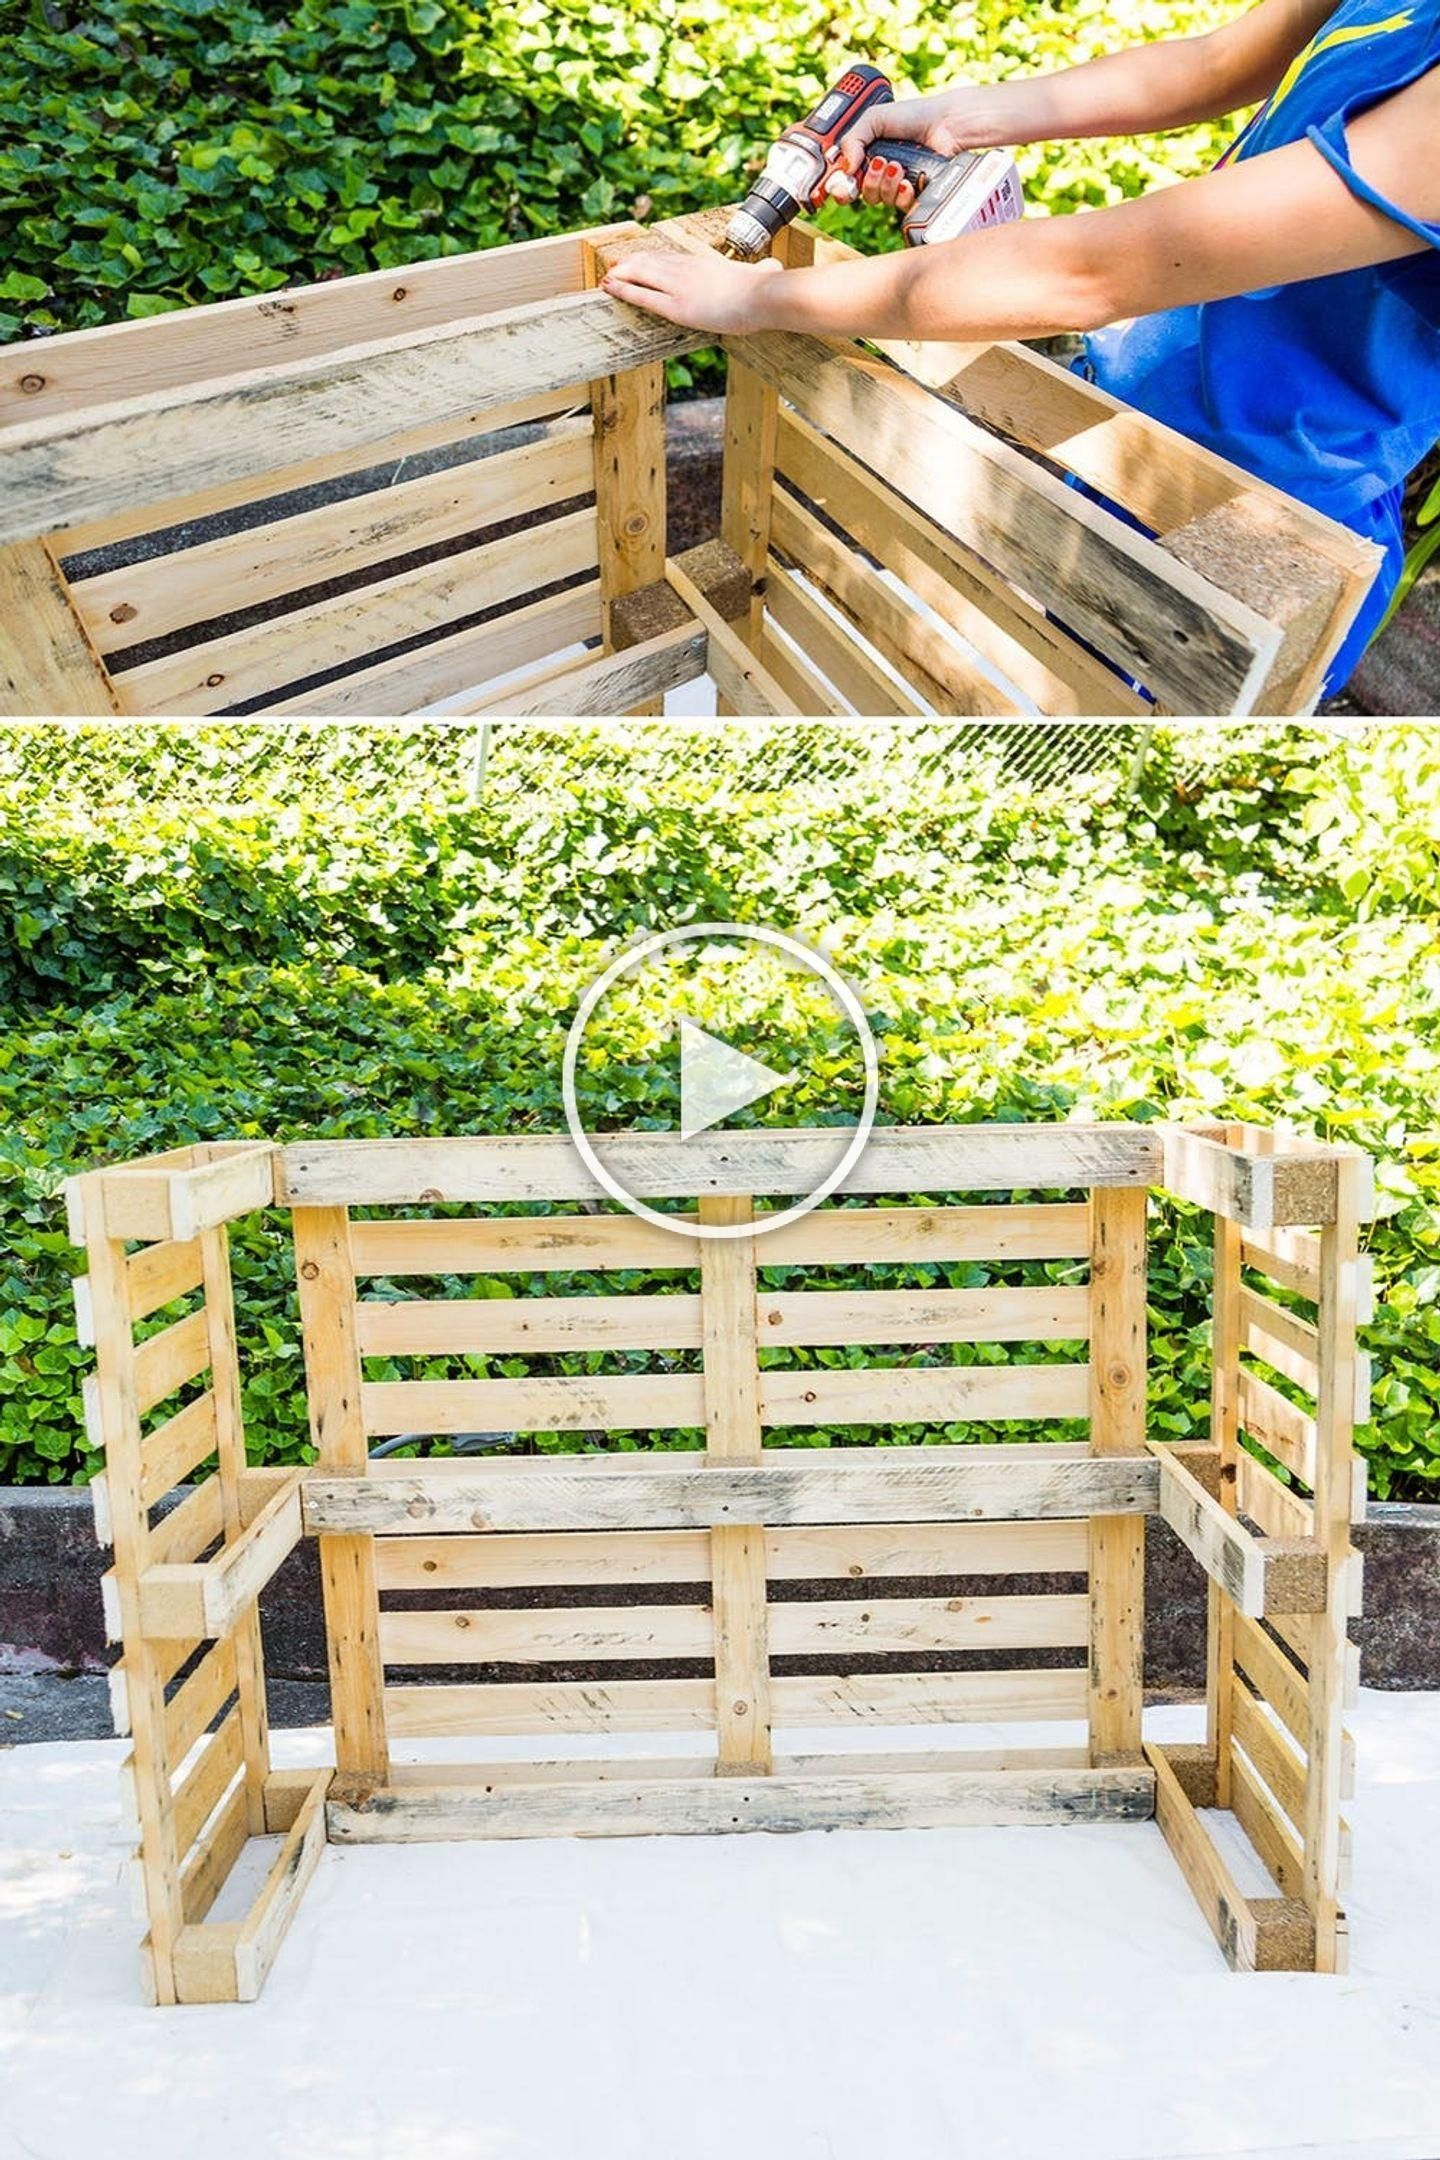 Diy This Pool Bar Made From Pallets To Step Up Your Backyard Game